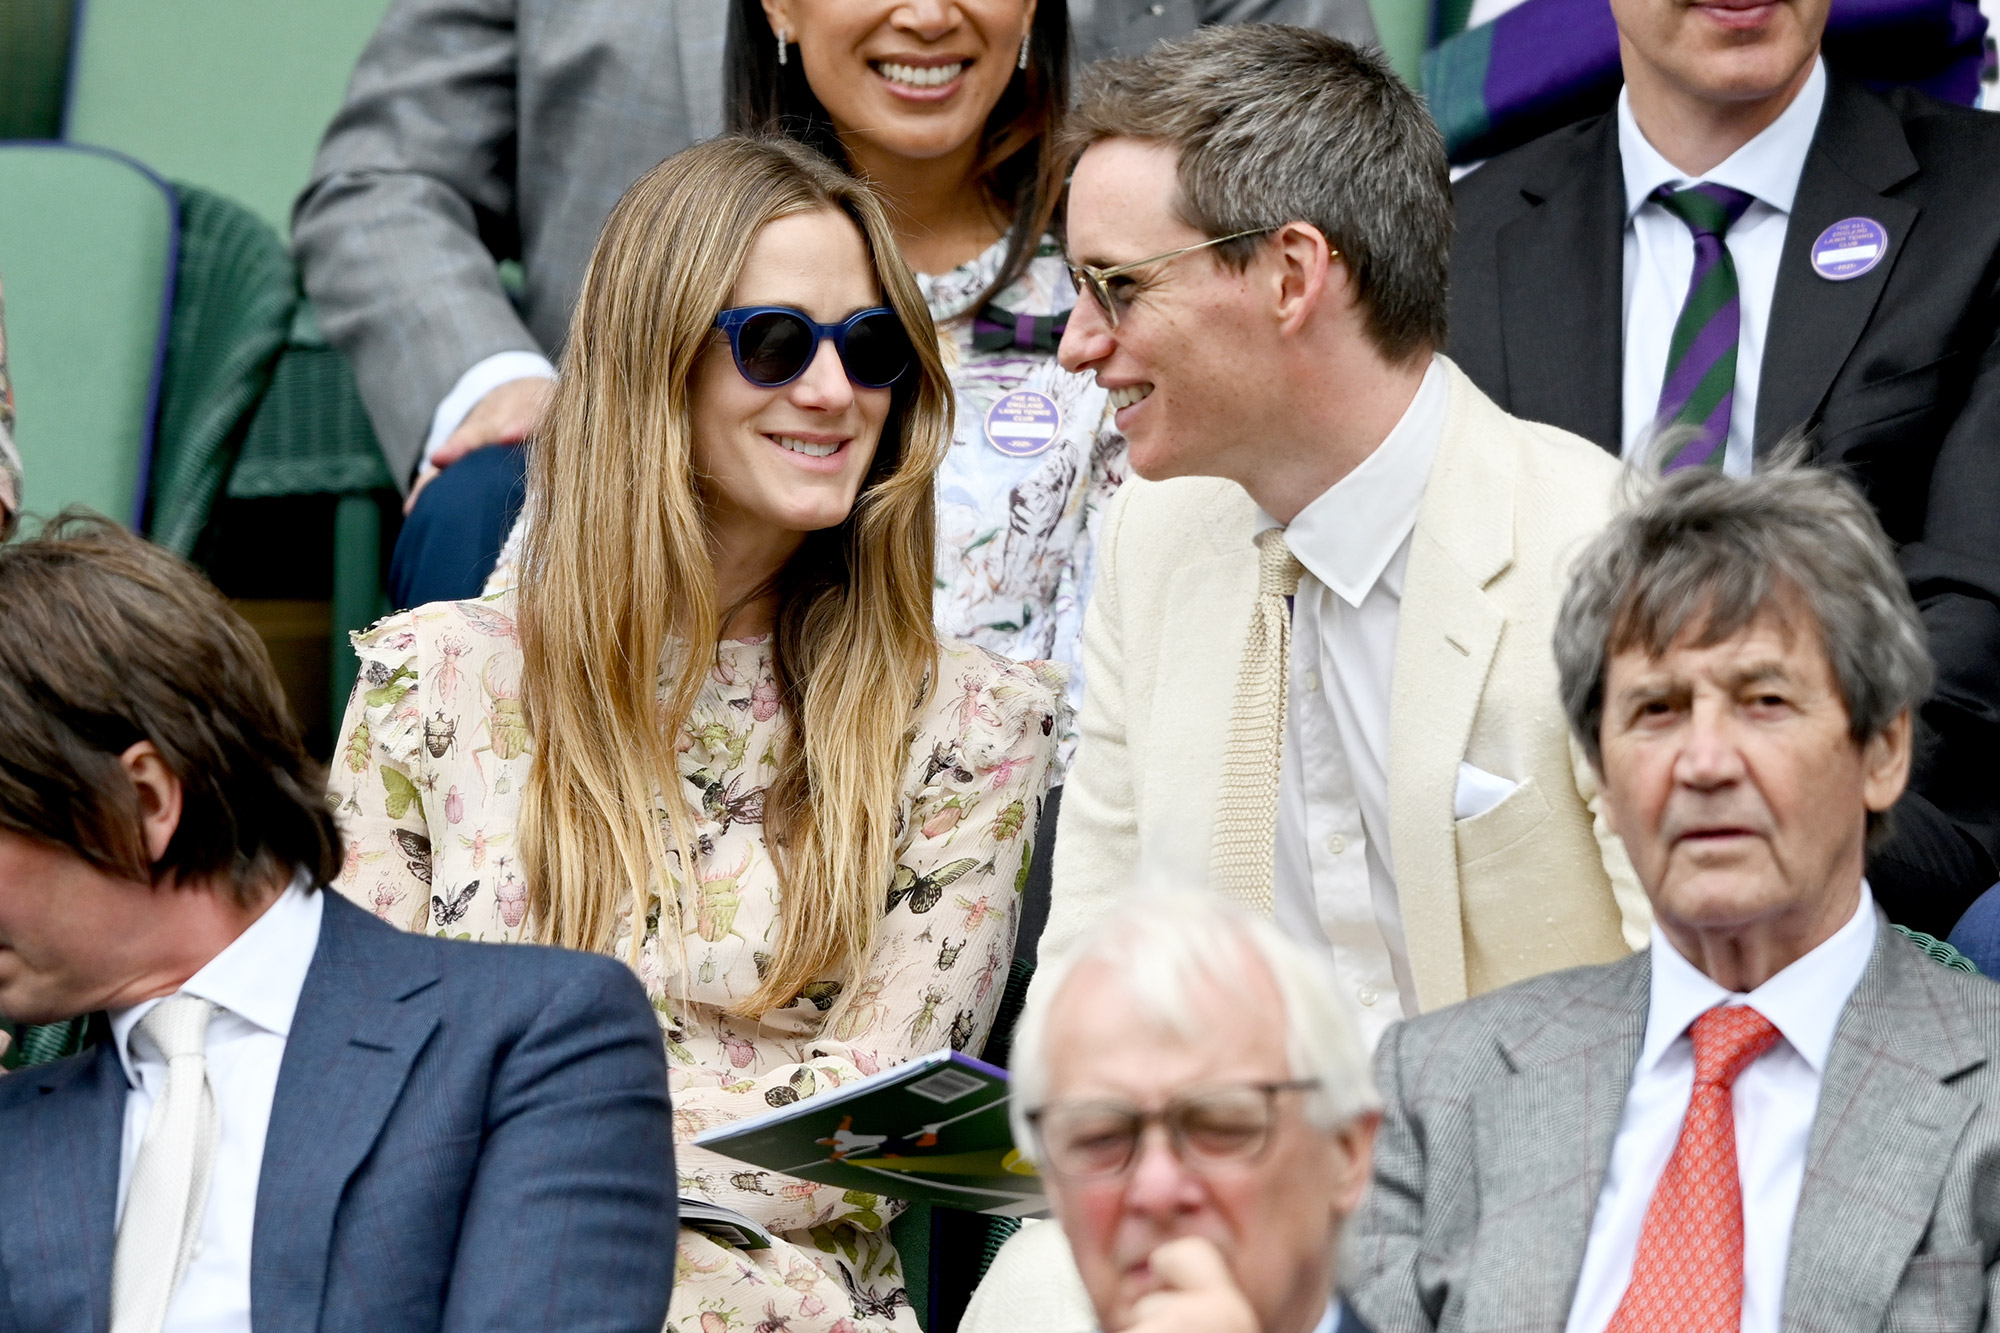 Hannah Redmayne and Eddie Redmayne attend Wimbledon Championships Tennis Tournament at All England Lawn Tennis and Croquet Club on July 07, 2021 in London, England